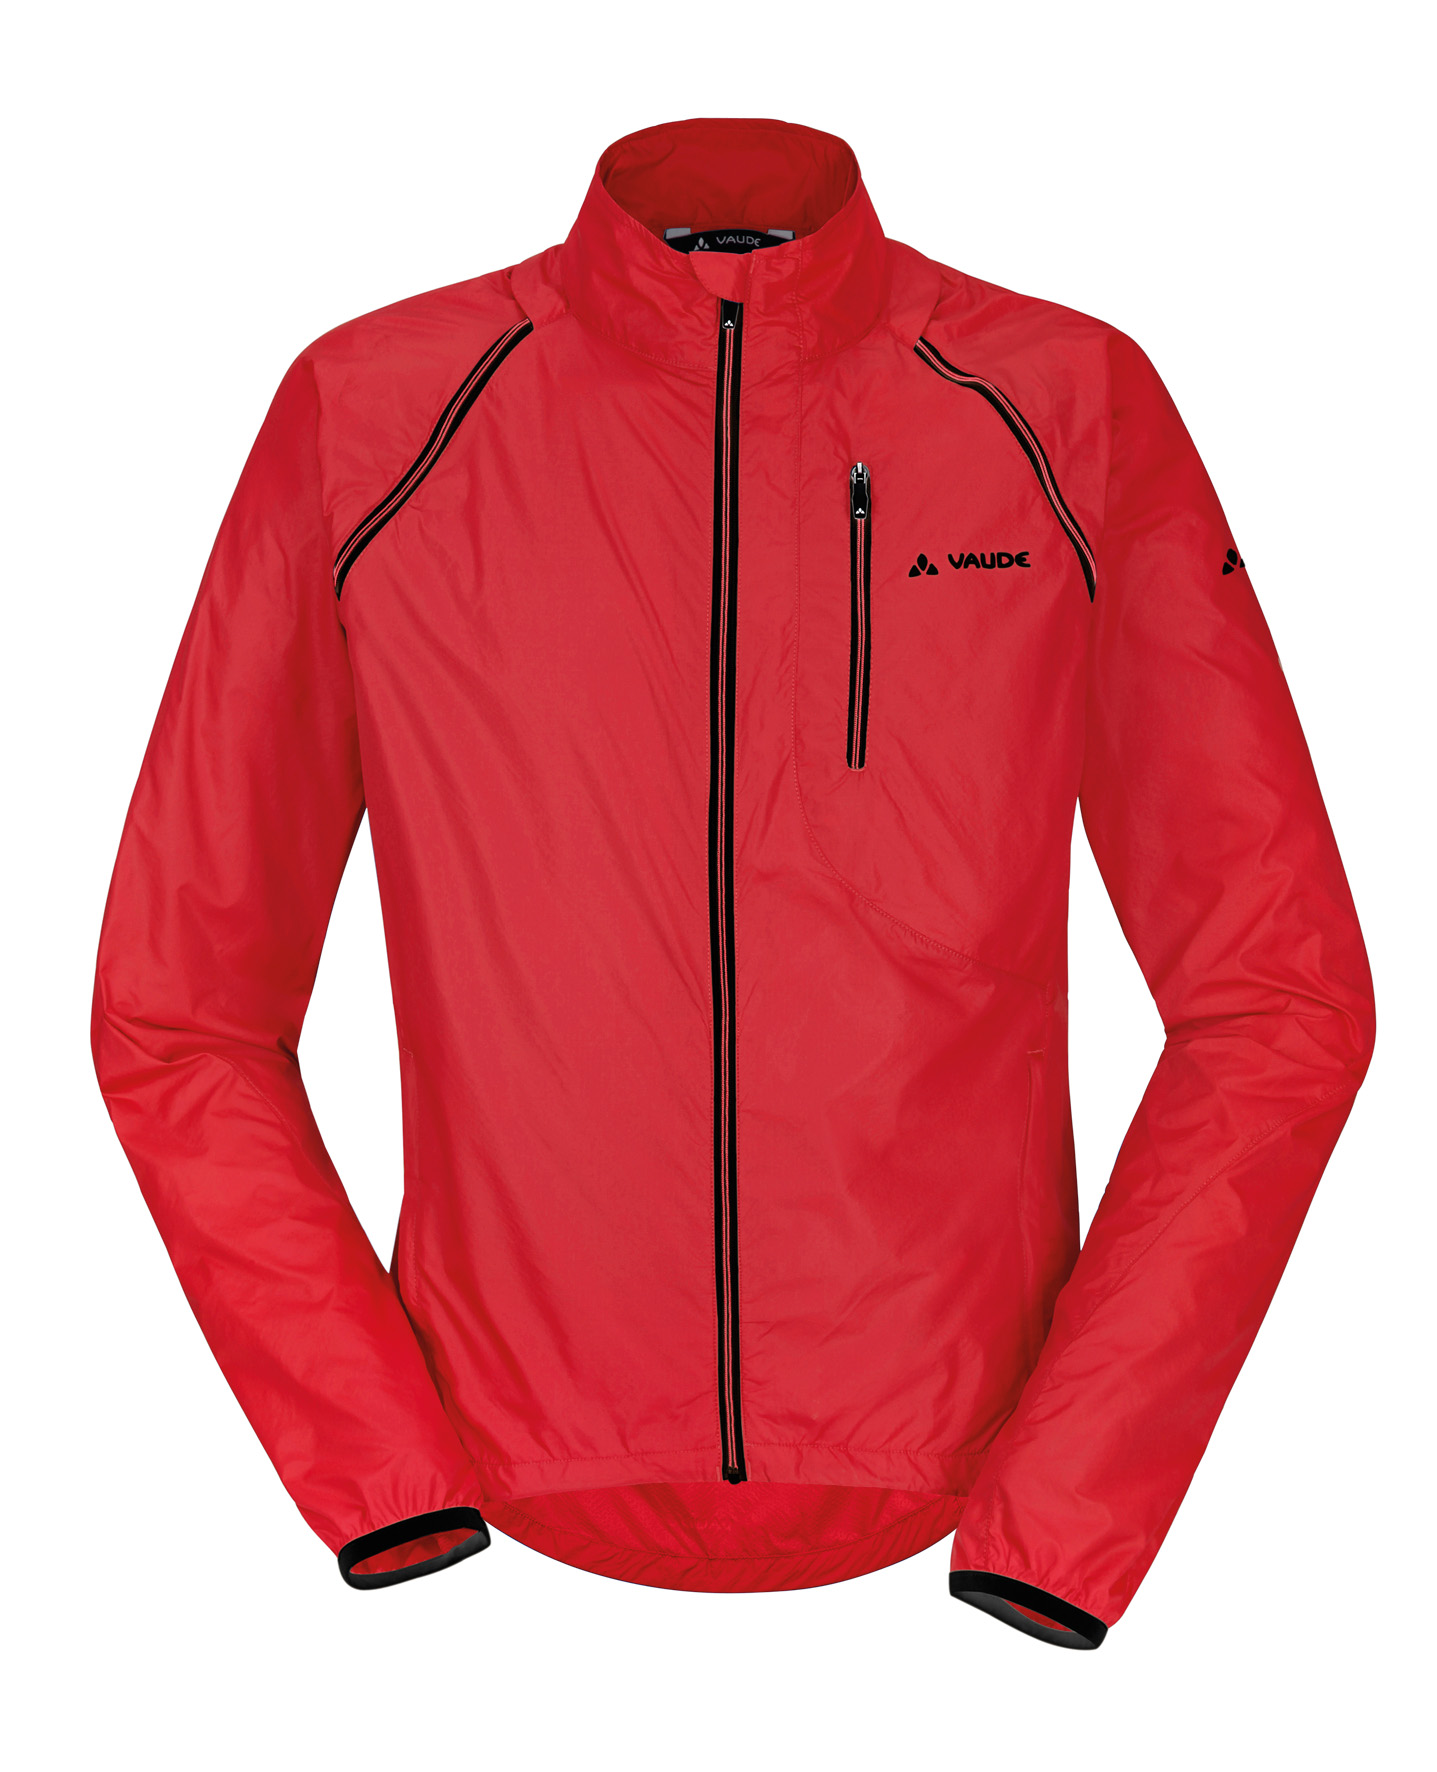 VAUDE Men´s Windoo Jacket red Größe S - schneider-sports